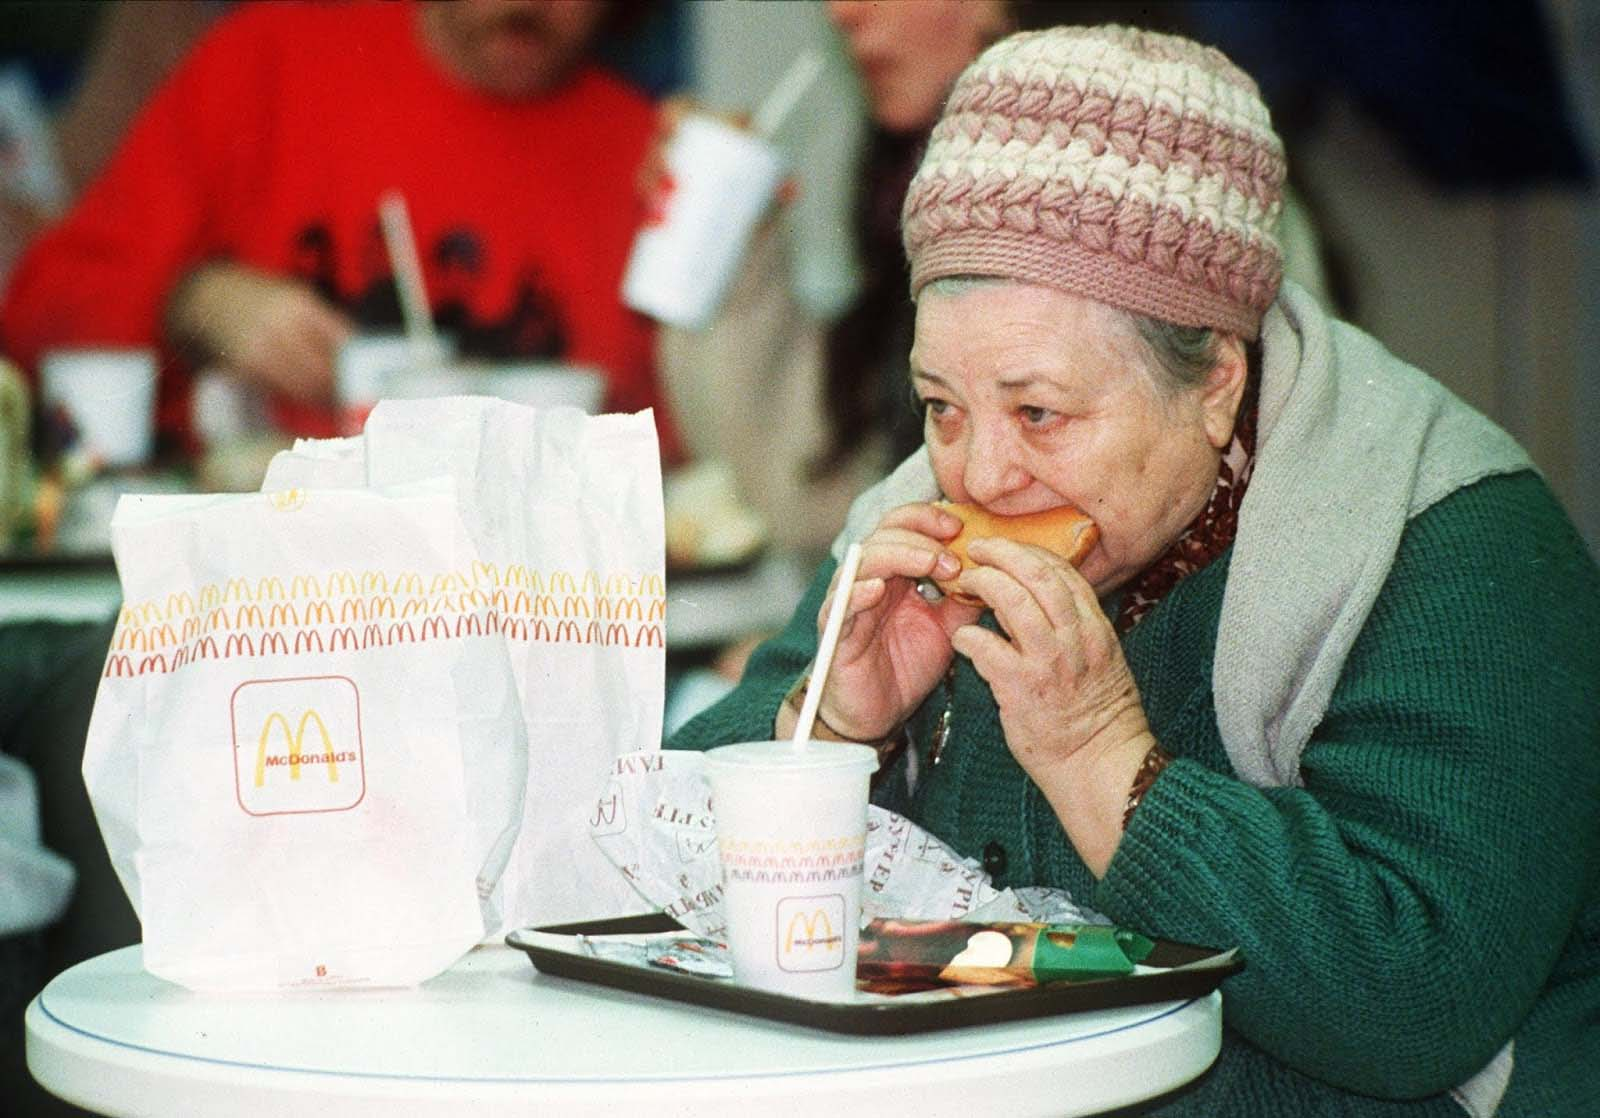 An old lady enjoyed her burger.